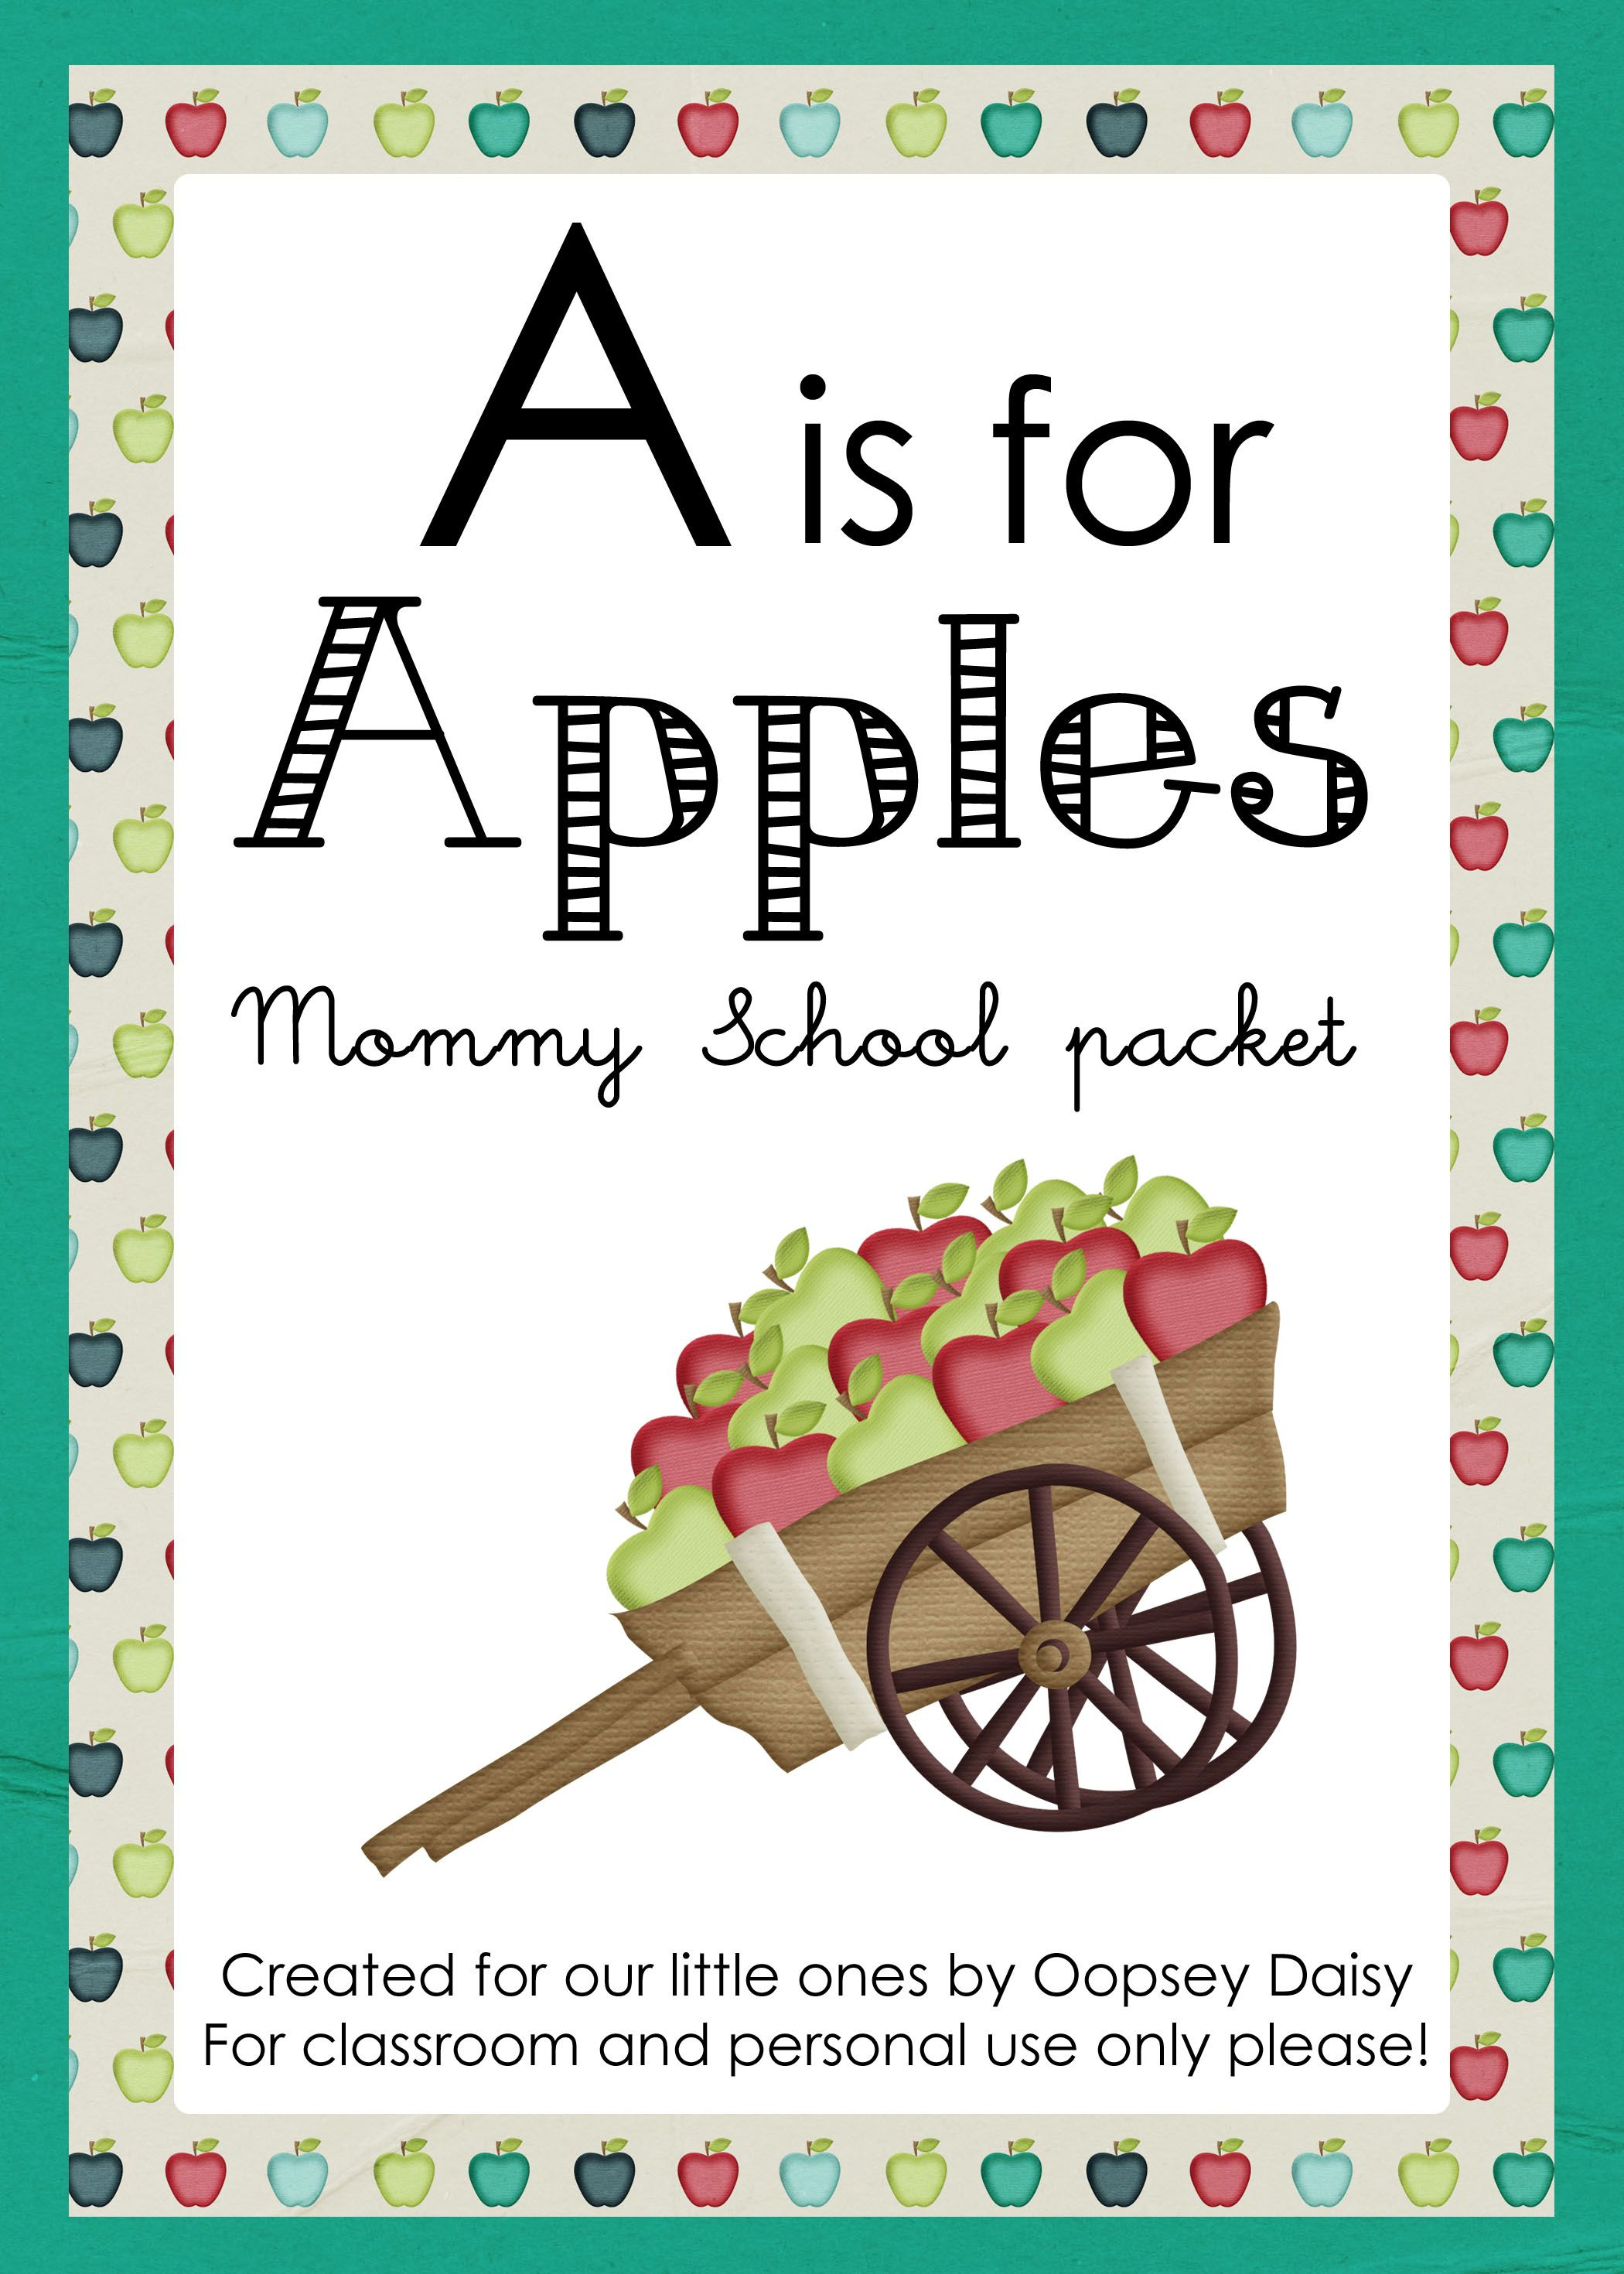 Mommy School Wonderful Packets For Each Letter With A